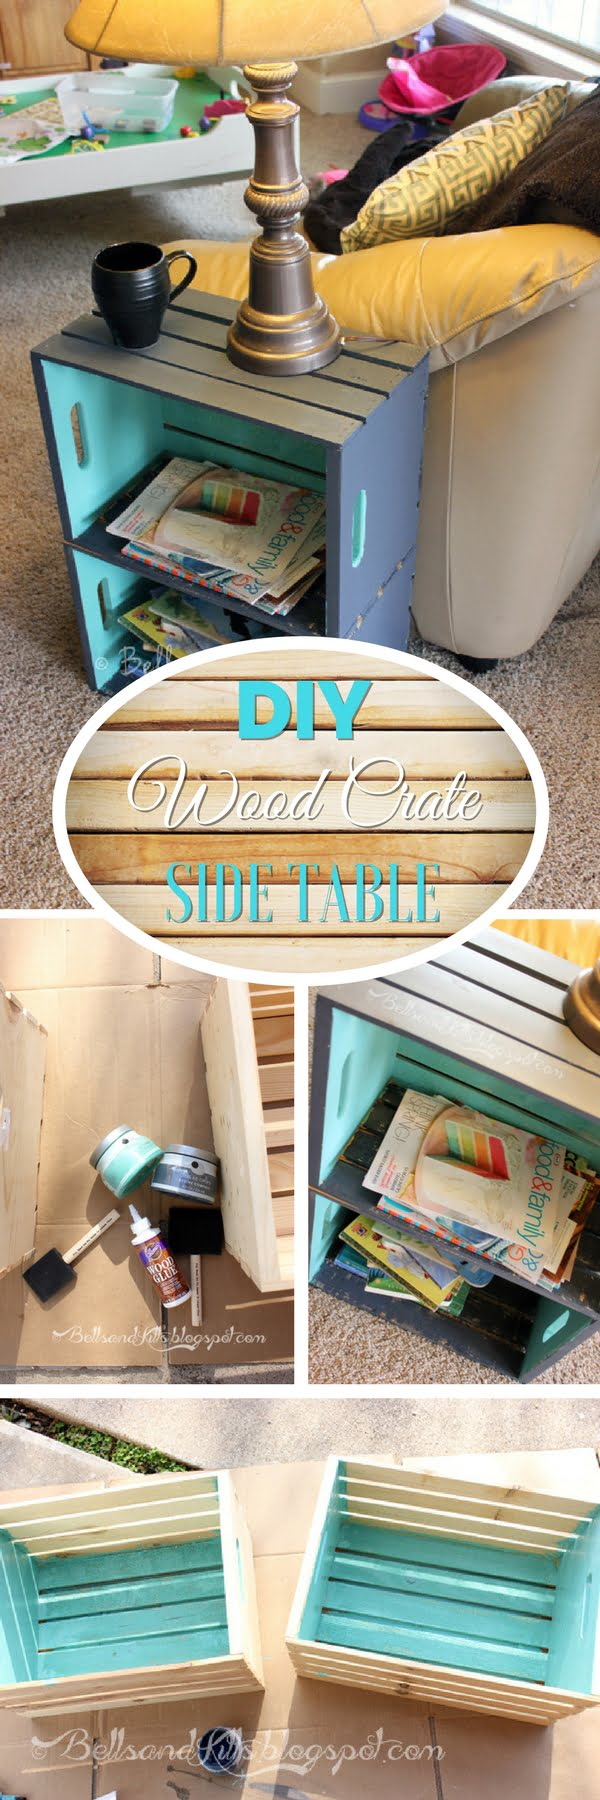 15 Brilliant DIY Crafts You Can Make with Wood Crates - Check out how to build a simple DIY side table form wood crates